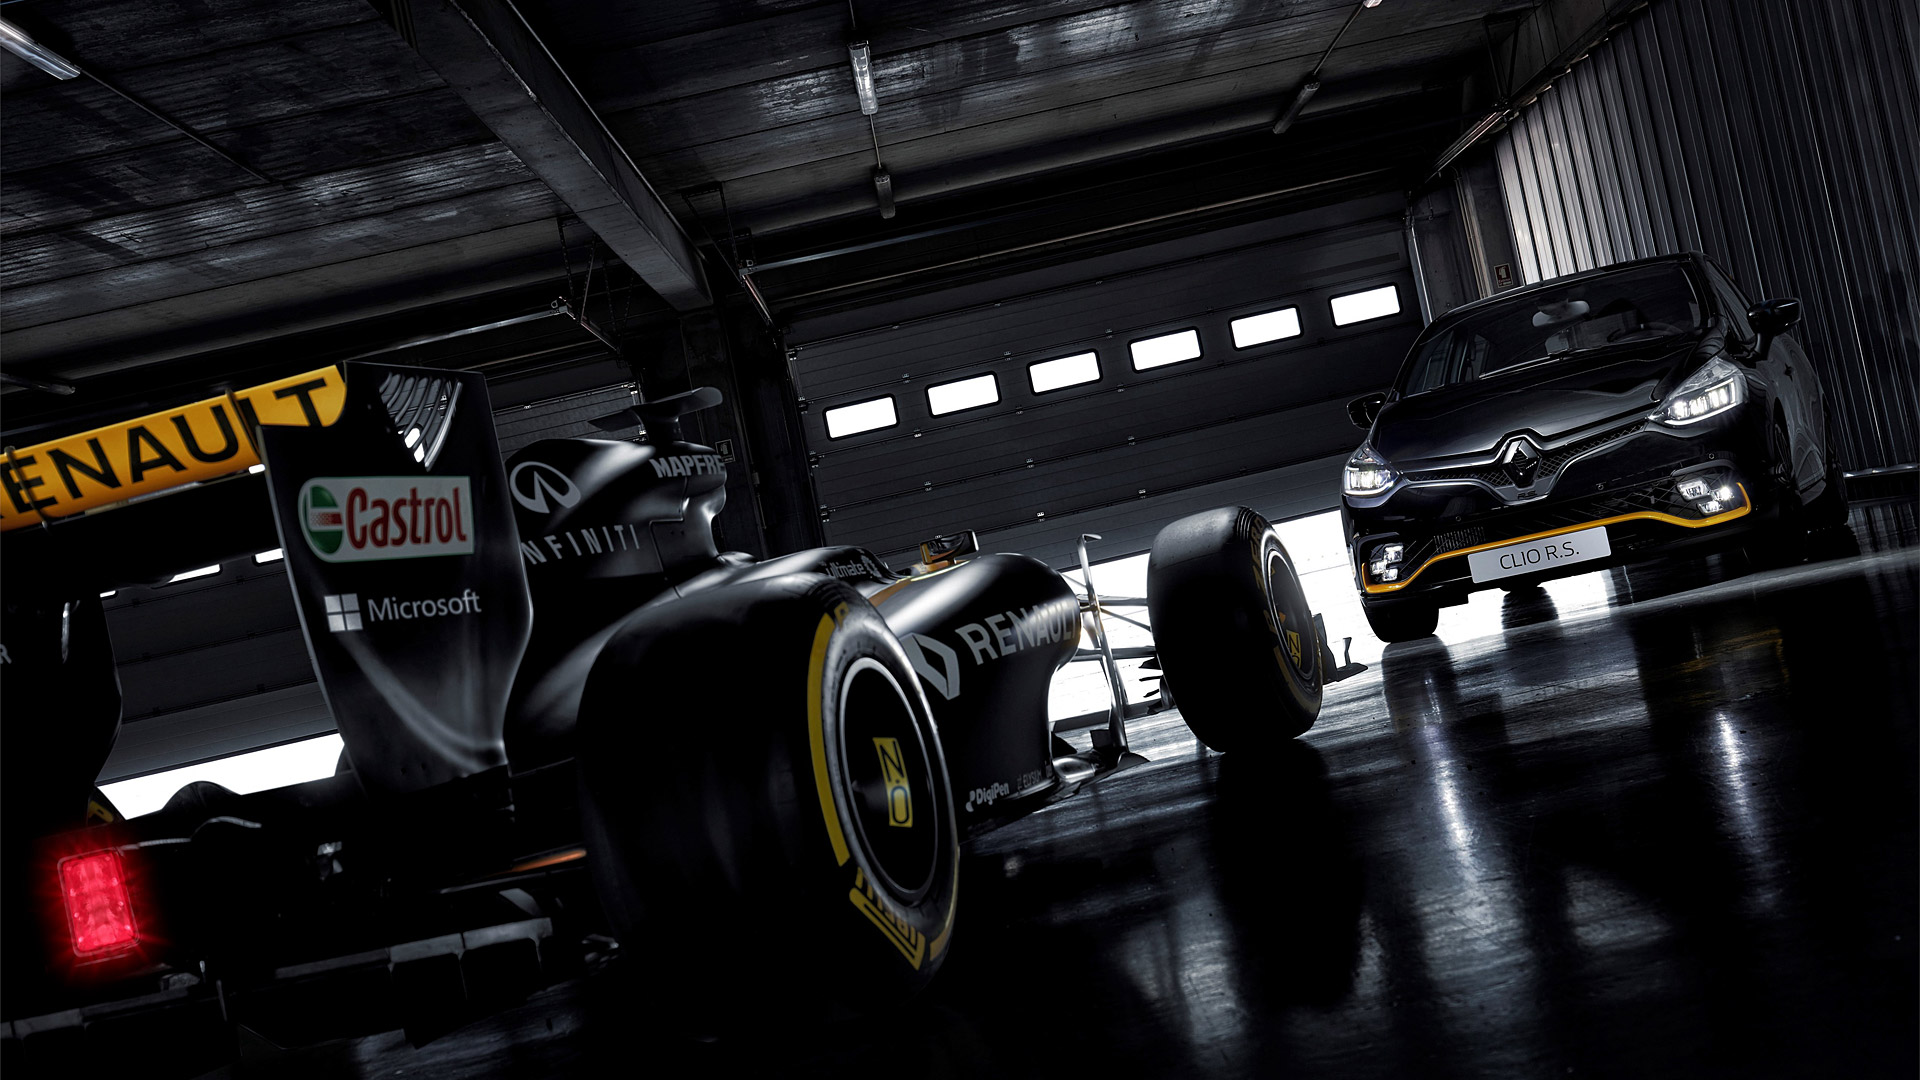 1920x1080 - Renault RS Wallpapers 16